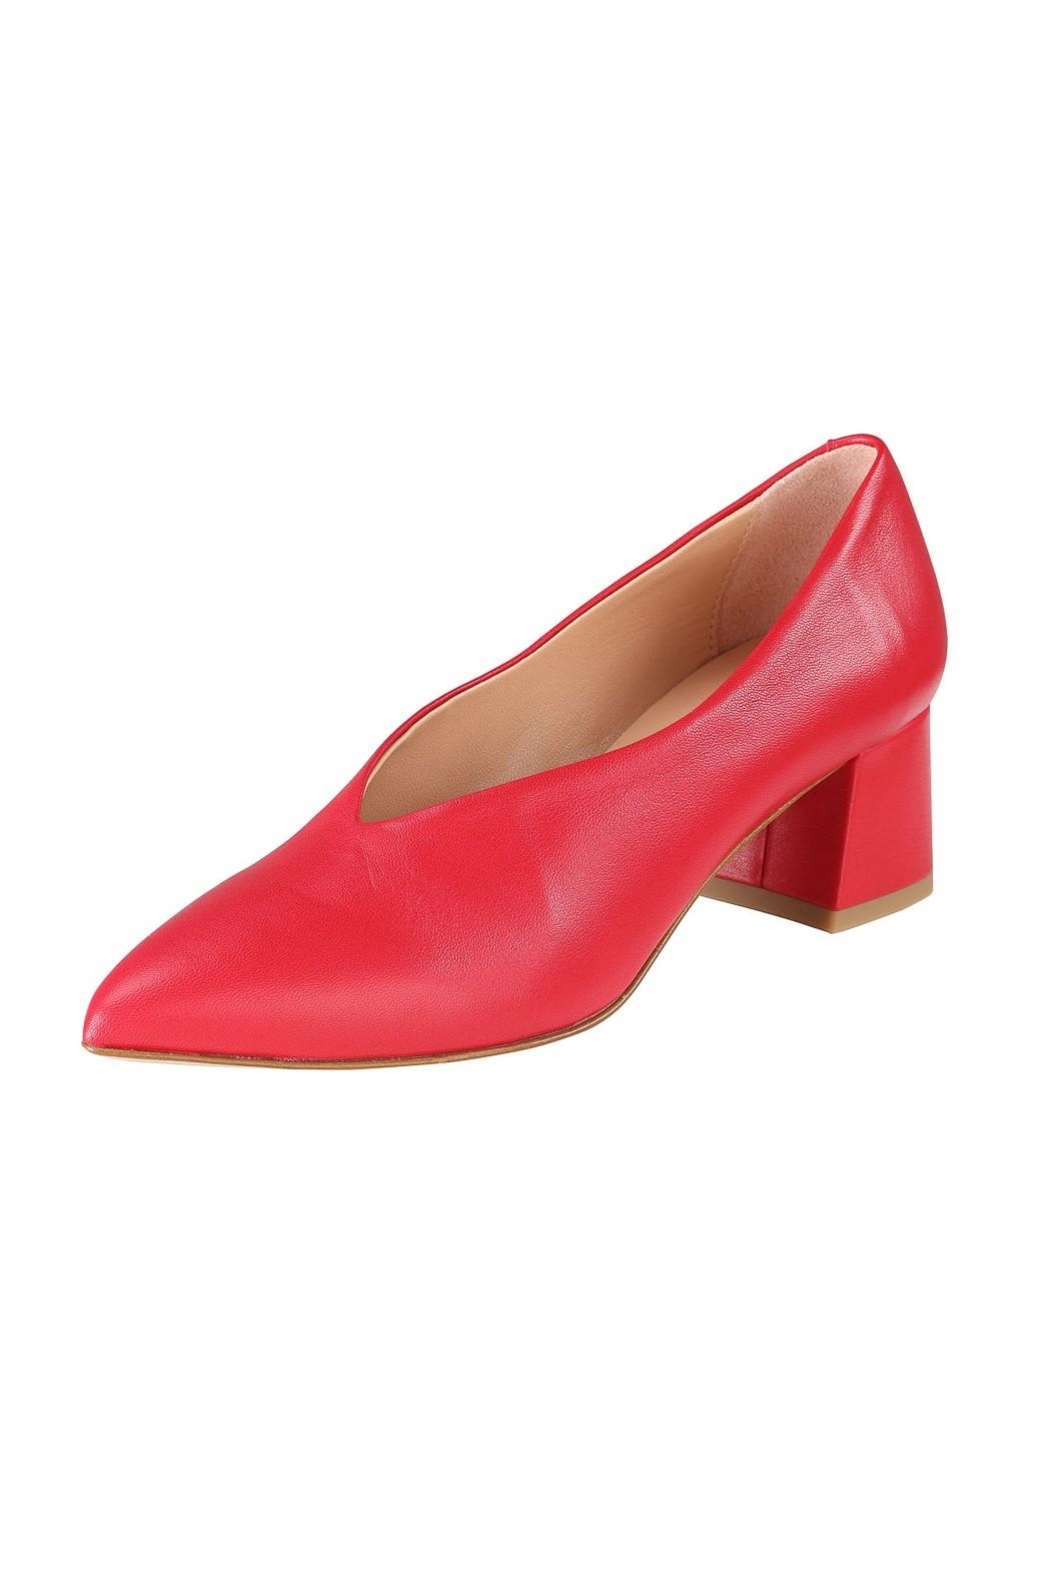 Pascucci Red Leather Pumps - Front Full Image